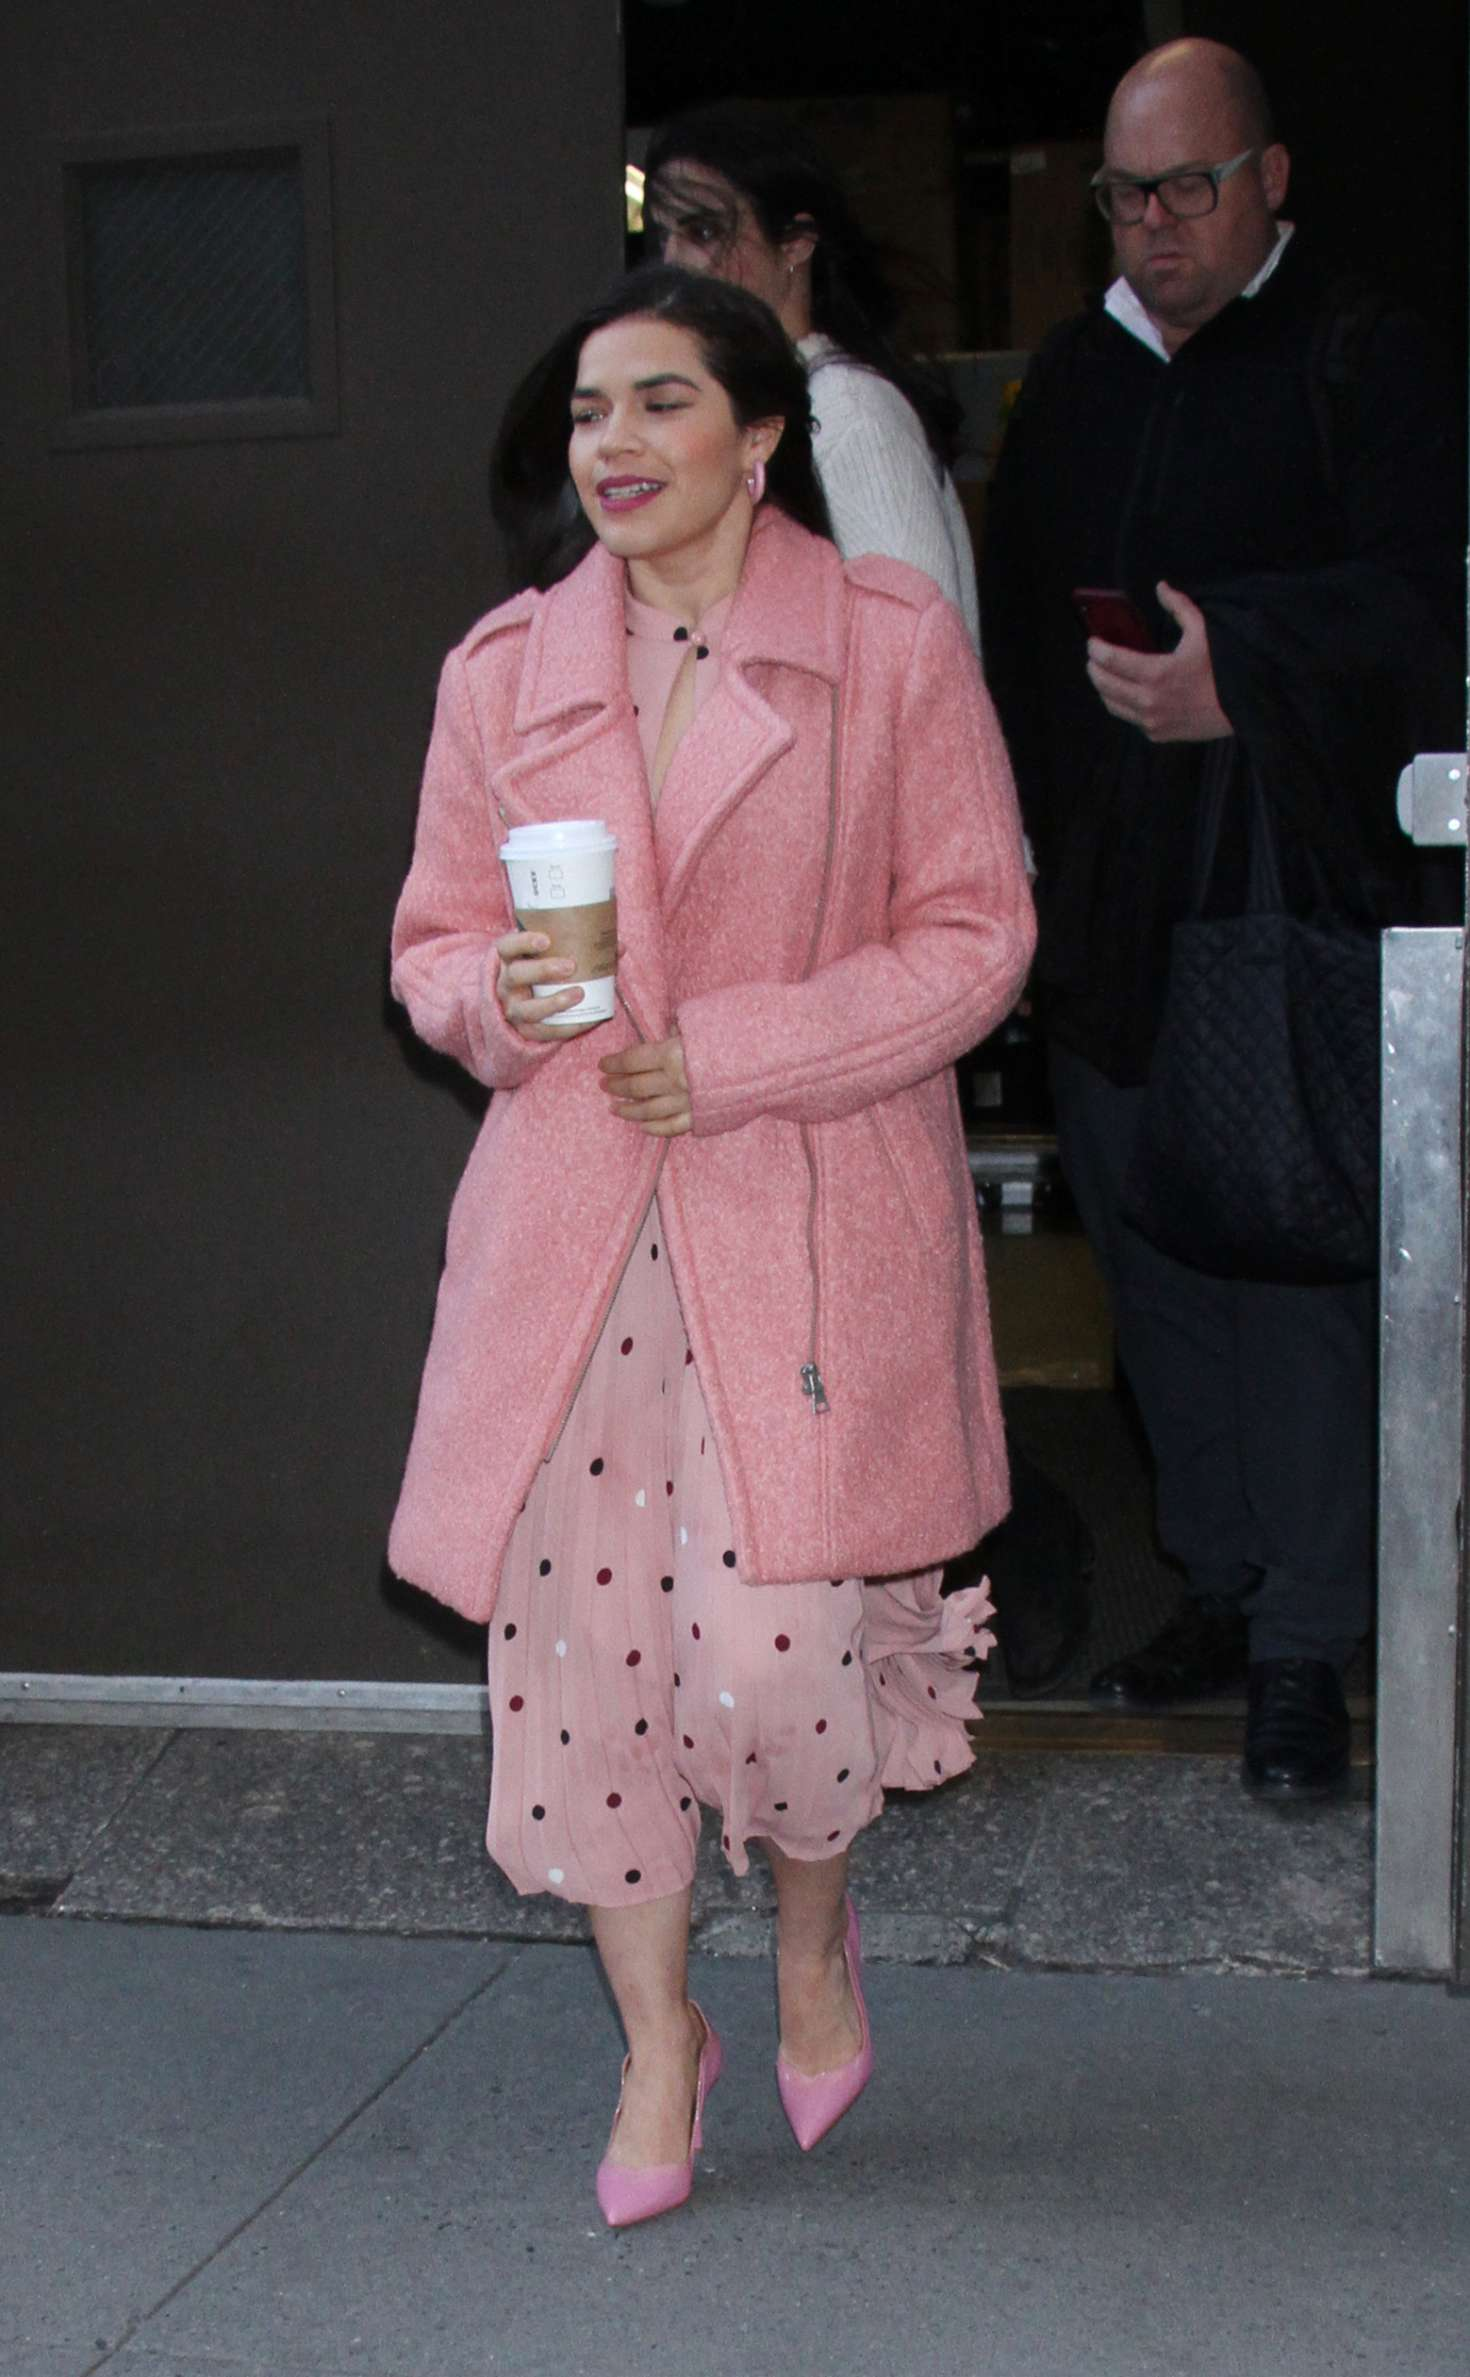 America Ferrera in Pink - Arrives at Today Show in NYC